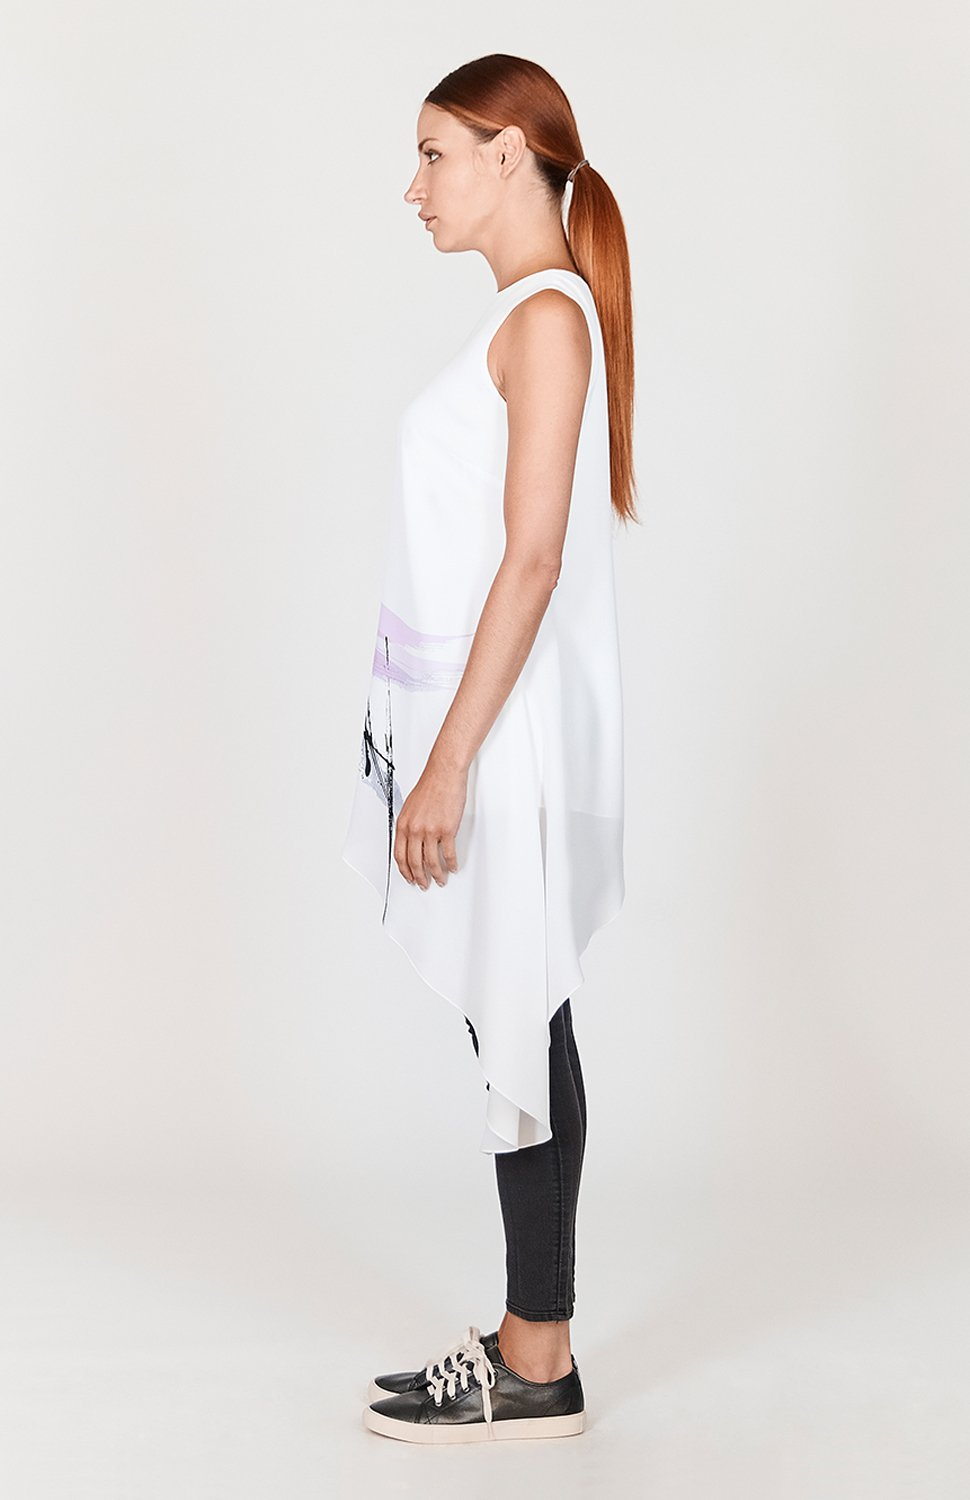 Mi Jong Lee Abstract Brush Print Asymmetric Tunic - Capsule 2